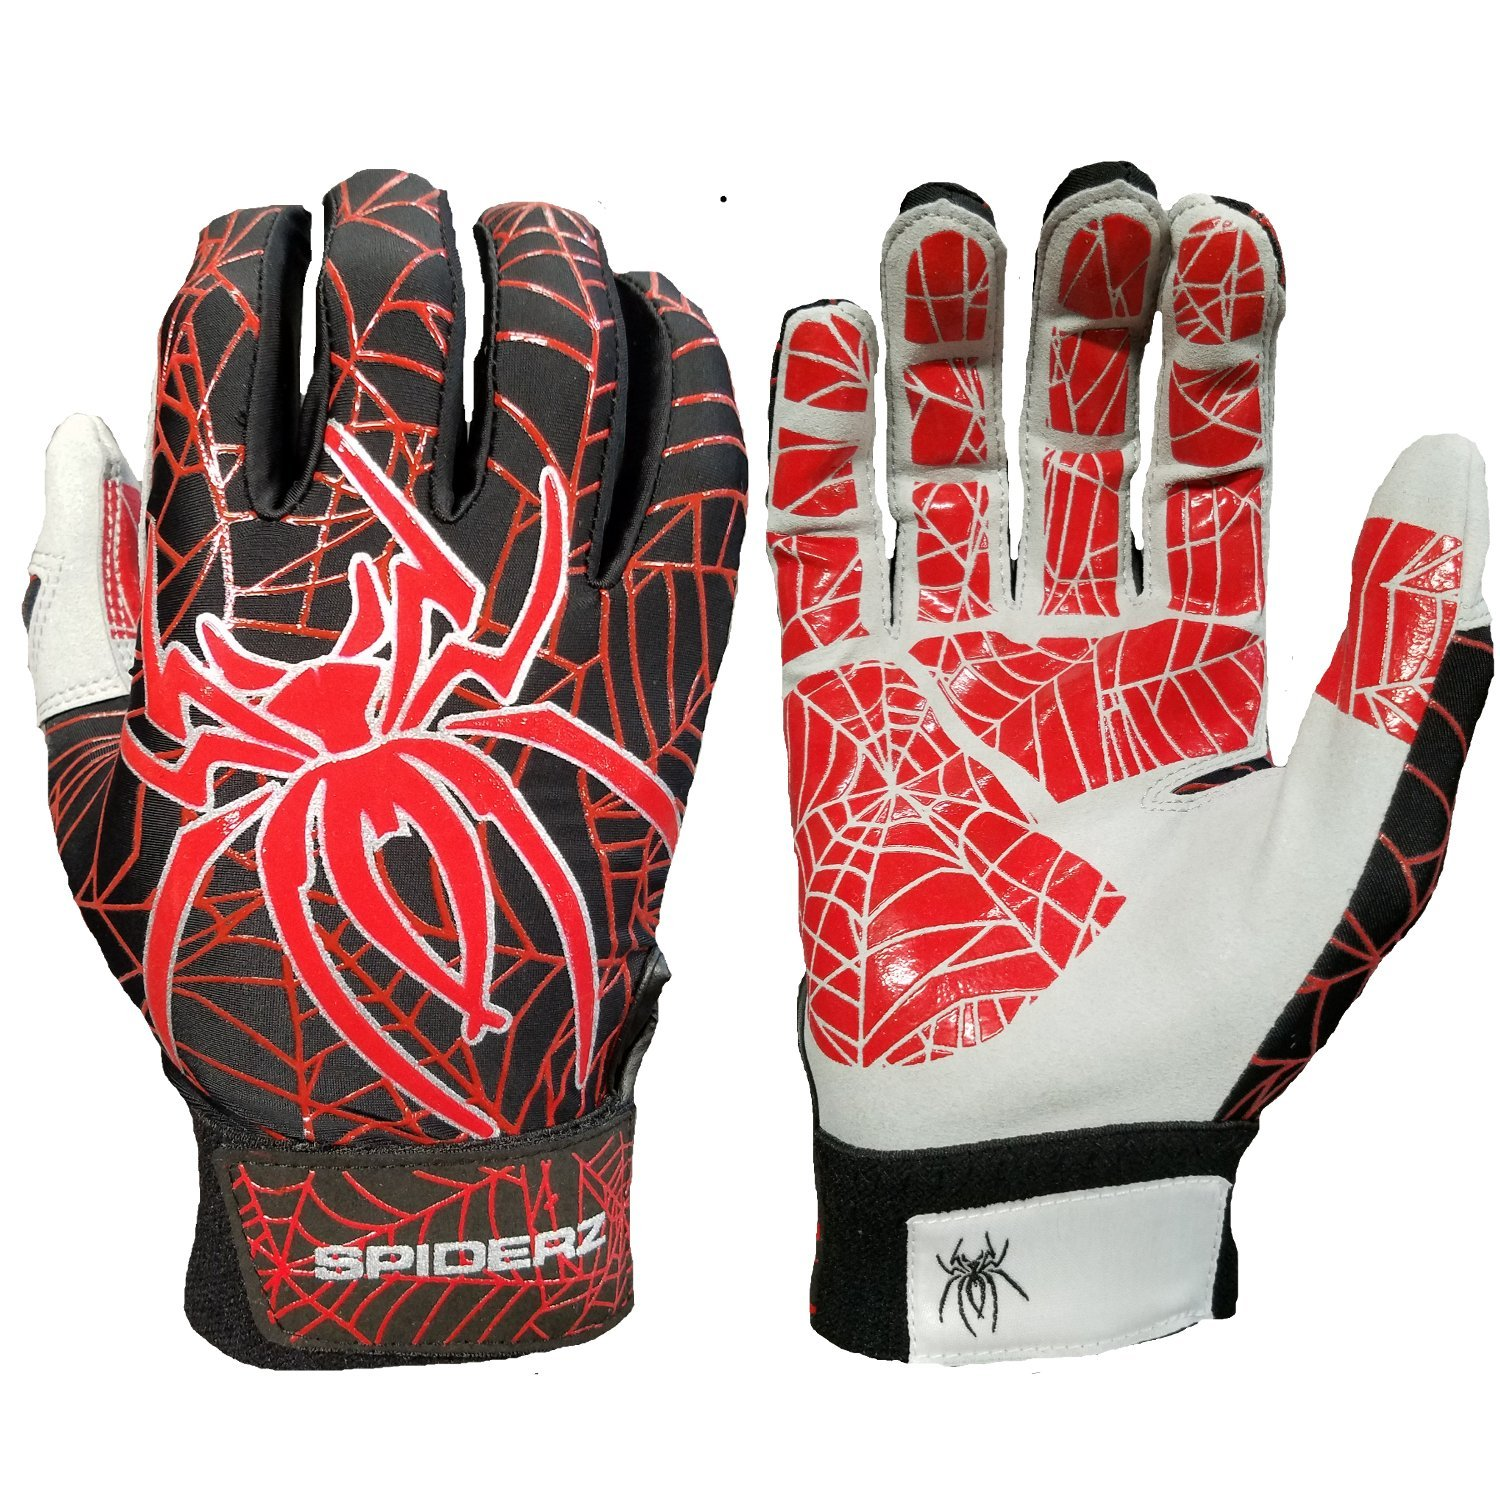 Spiderz Lite Batting Gloves with Enhanced Silicon Spider Webグリップ B07CBD948M Adult Small|ブラック/レッド/シルバー ブラック/レッド/シルバー Adult Small